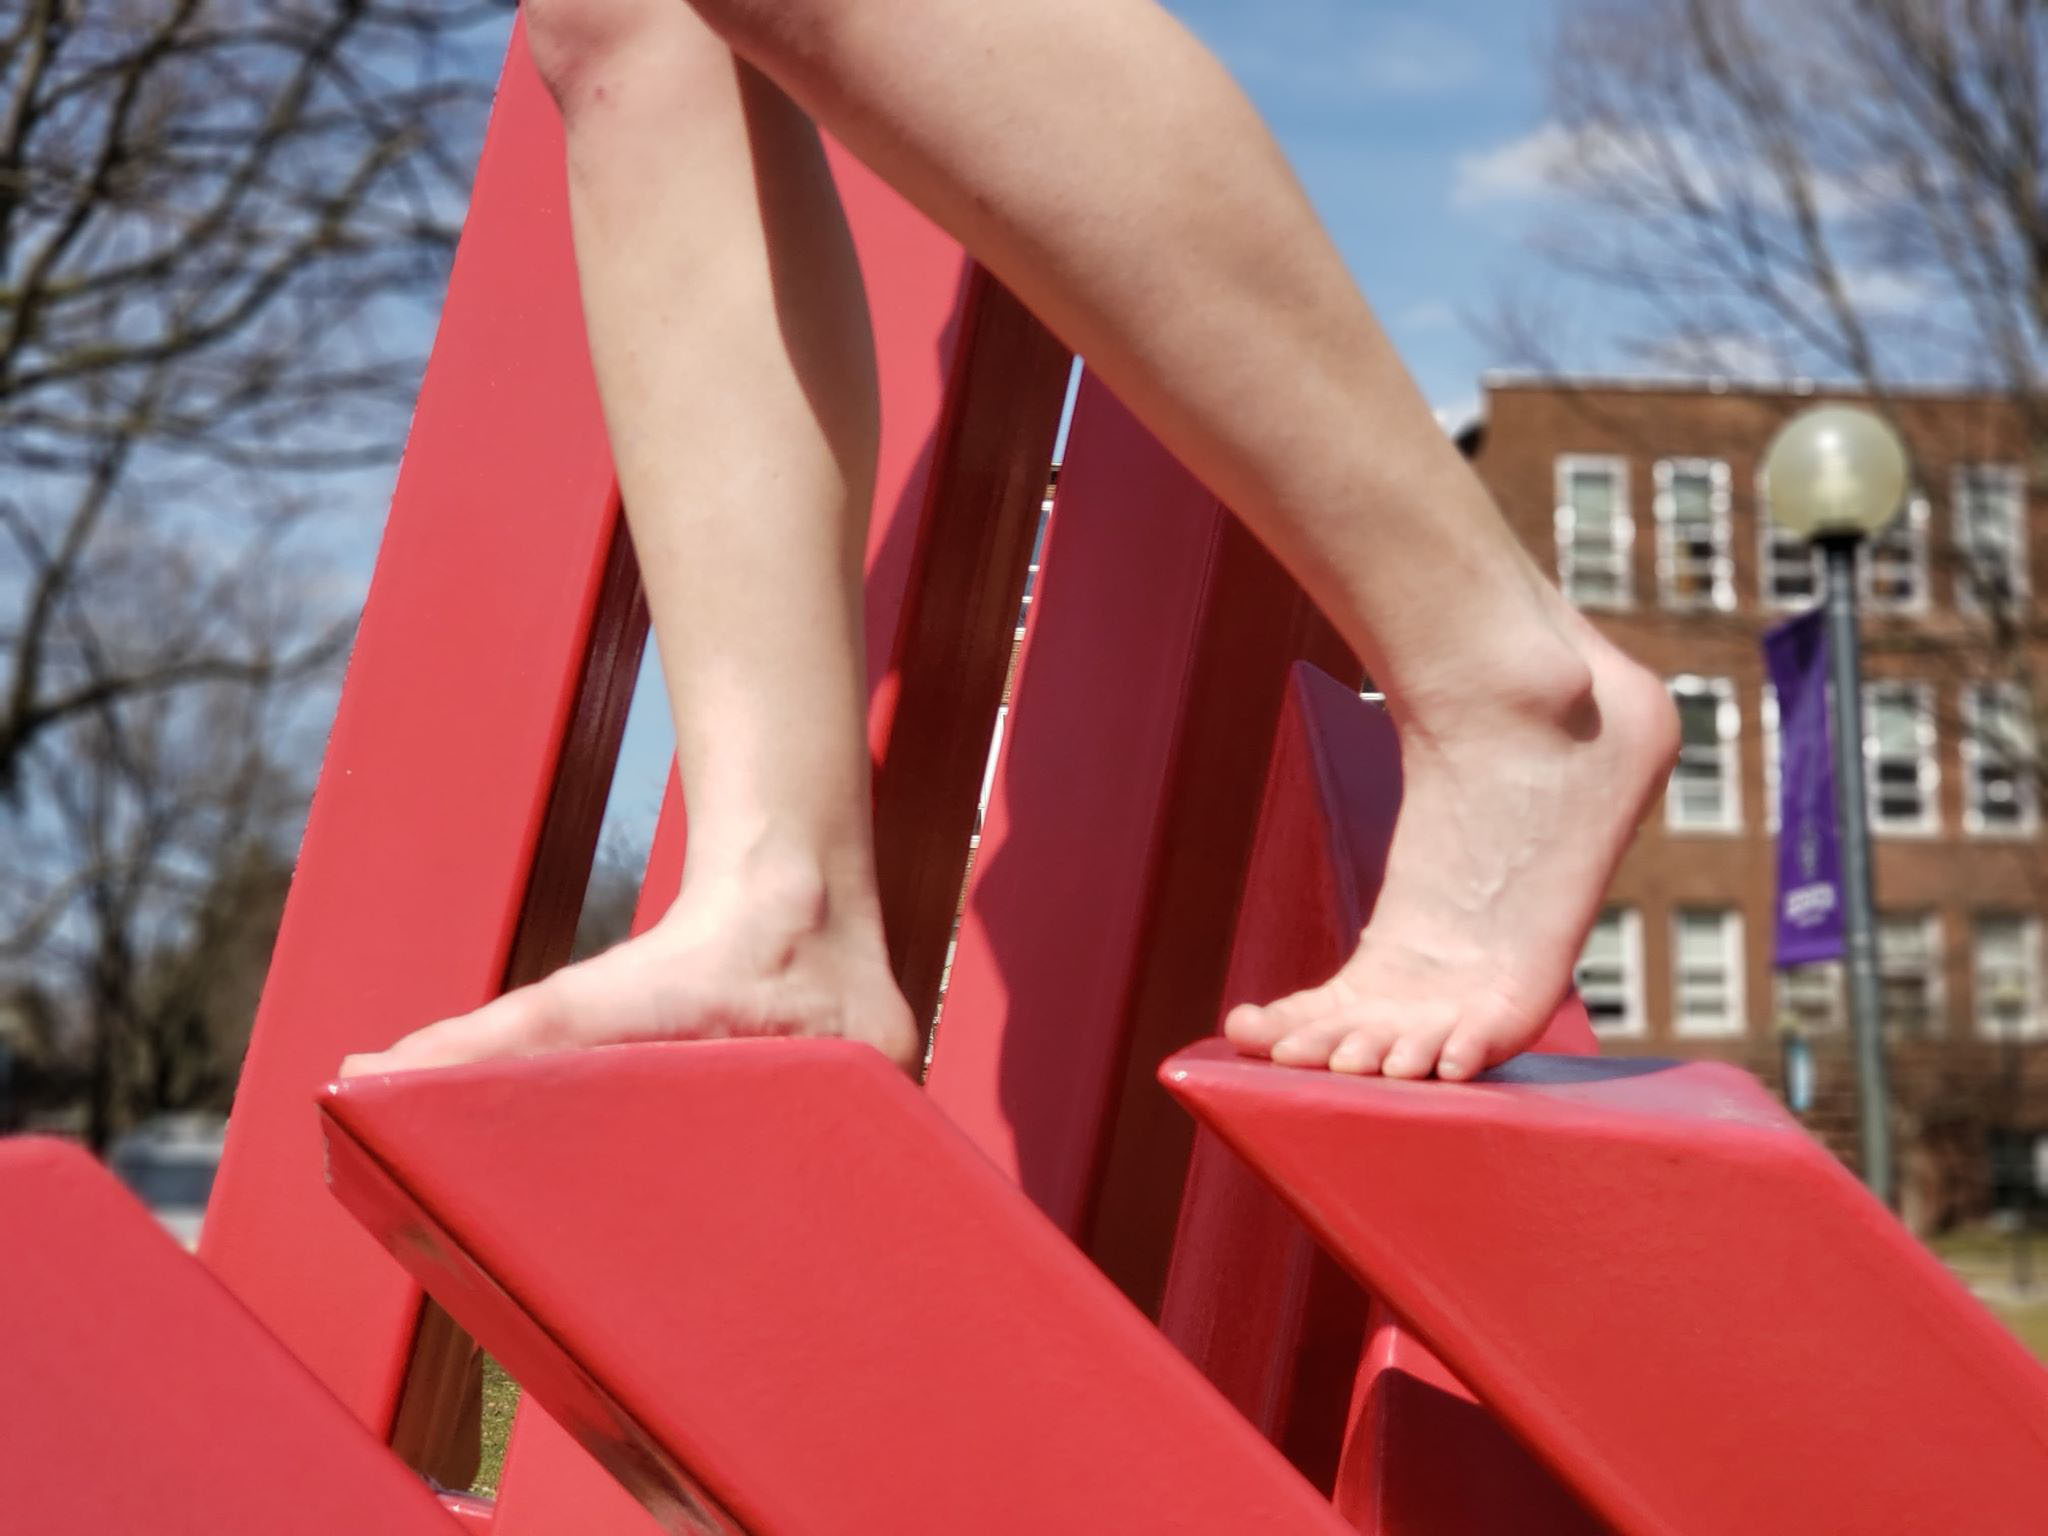 Bare feet stand on campus sculpture